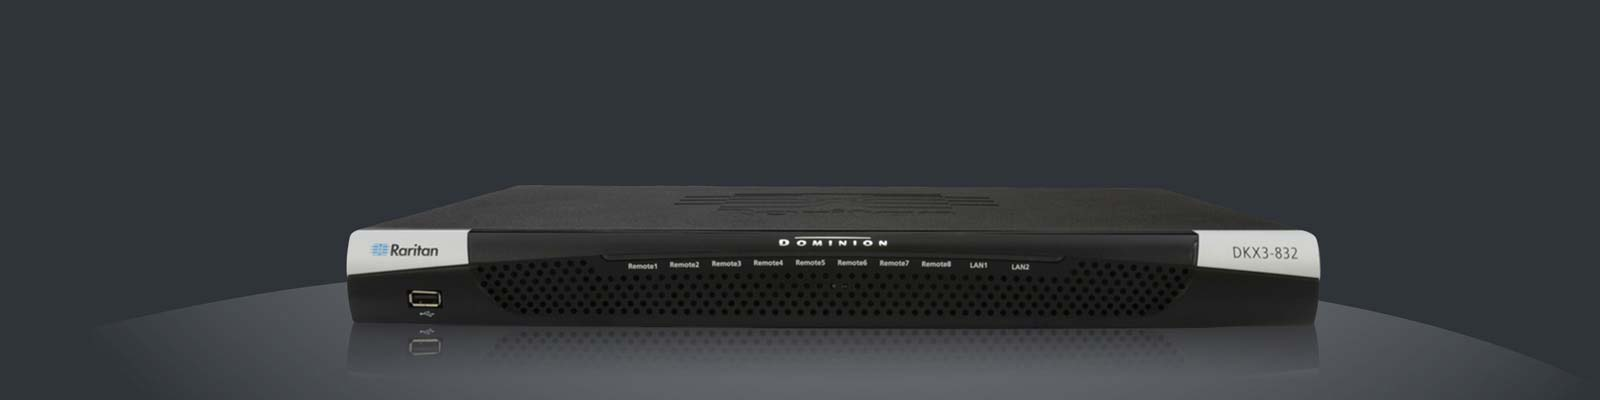 Raritan Dominion DKX3 VGA KVM Over IP Switch - Military Grade Security & Virtual USB Media support